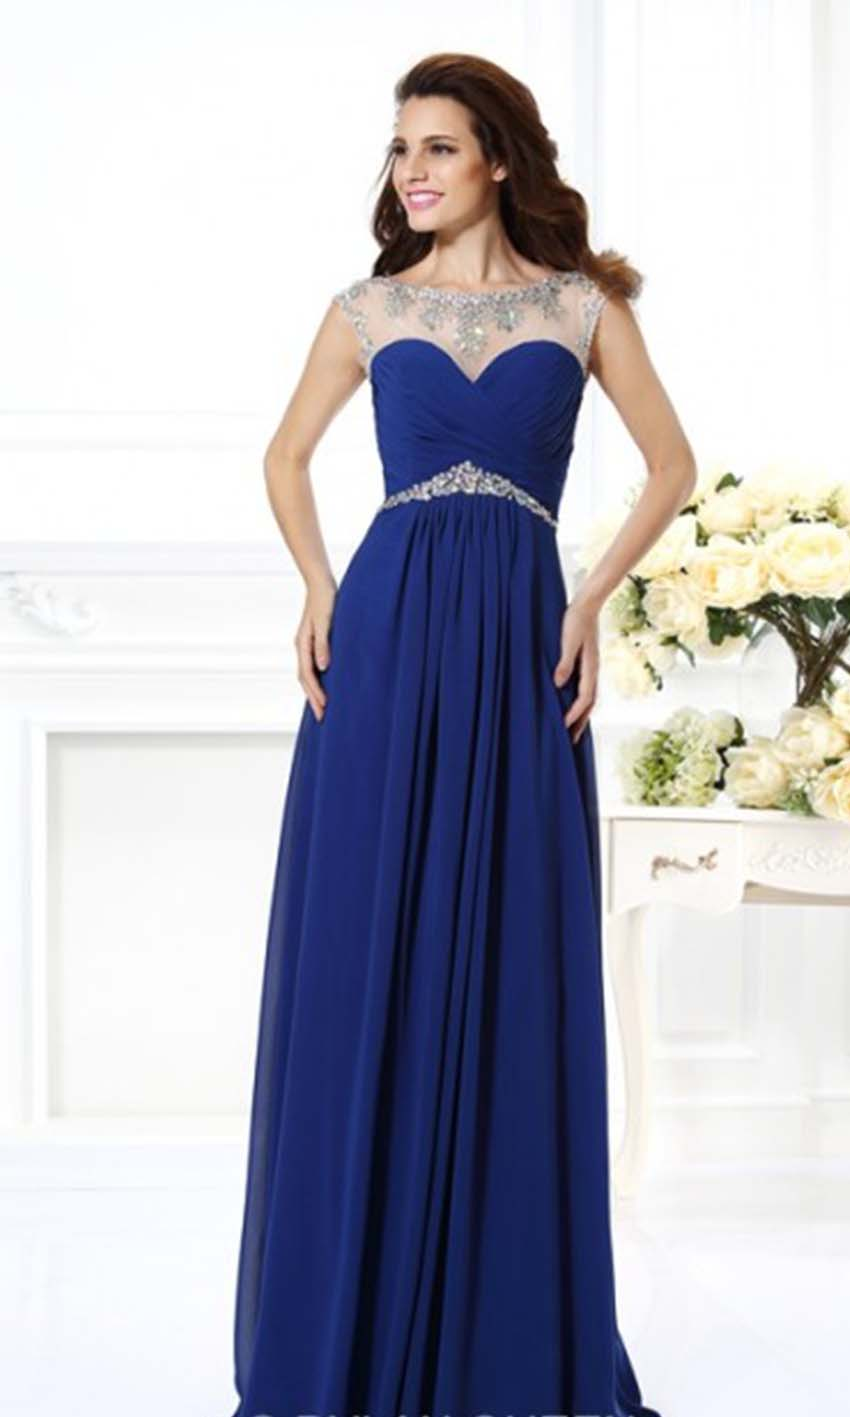 Blue illusion long lace prom dresses uk ksp346 ksp346 9400 blue illusion long lace prom dresses uk ksp346 ksp346 9400 cheap prom dresses uk bridesmaid dresses 2014 prom evening dresses look for cheap ombrellifo Image collections